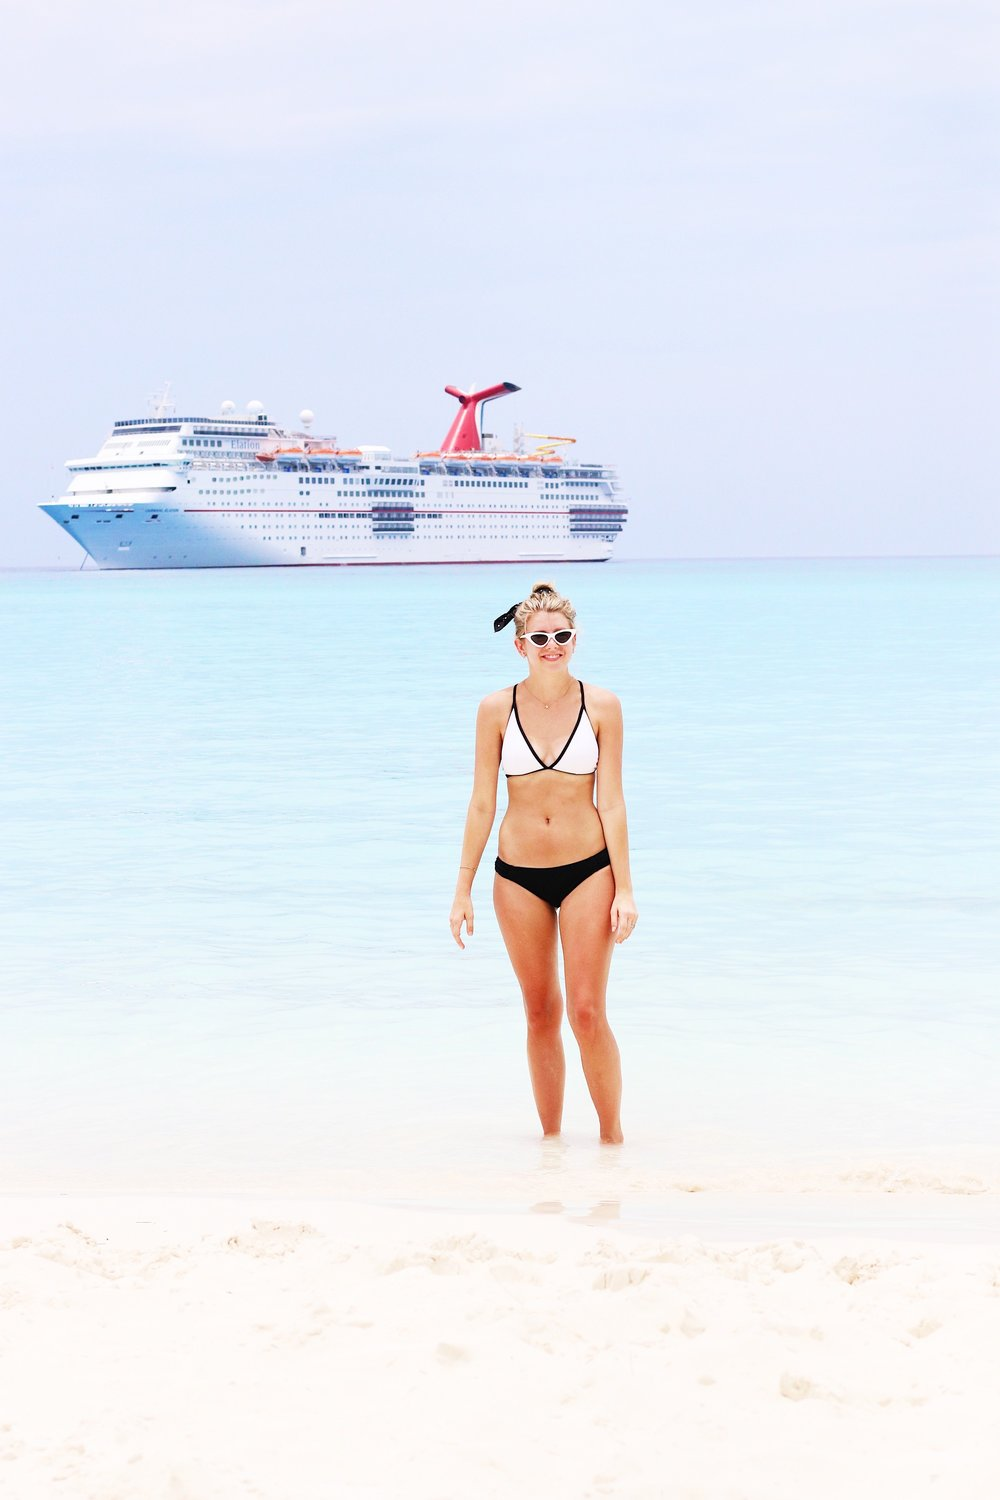 10 Things I Wish I Knew Before My First Cruise - Top US Travel Blogger - Blogger Sarah J (2).JPG